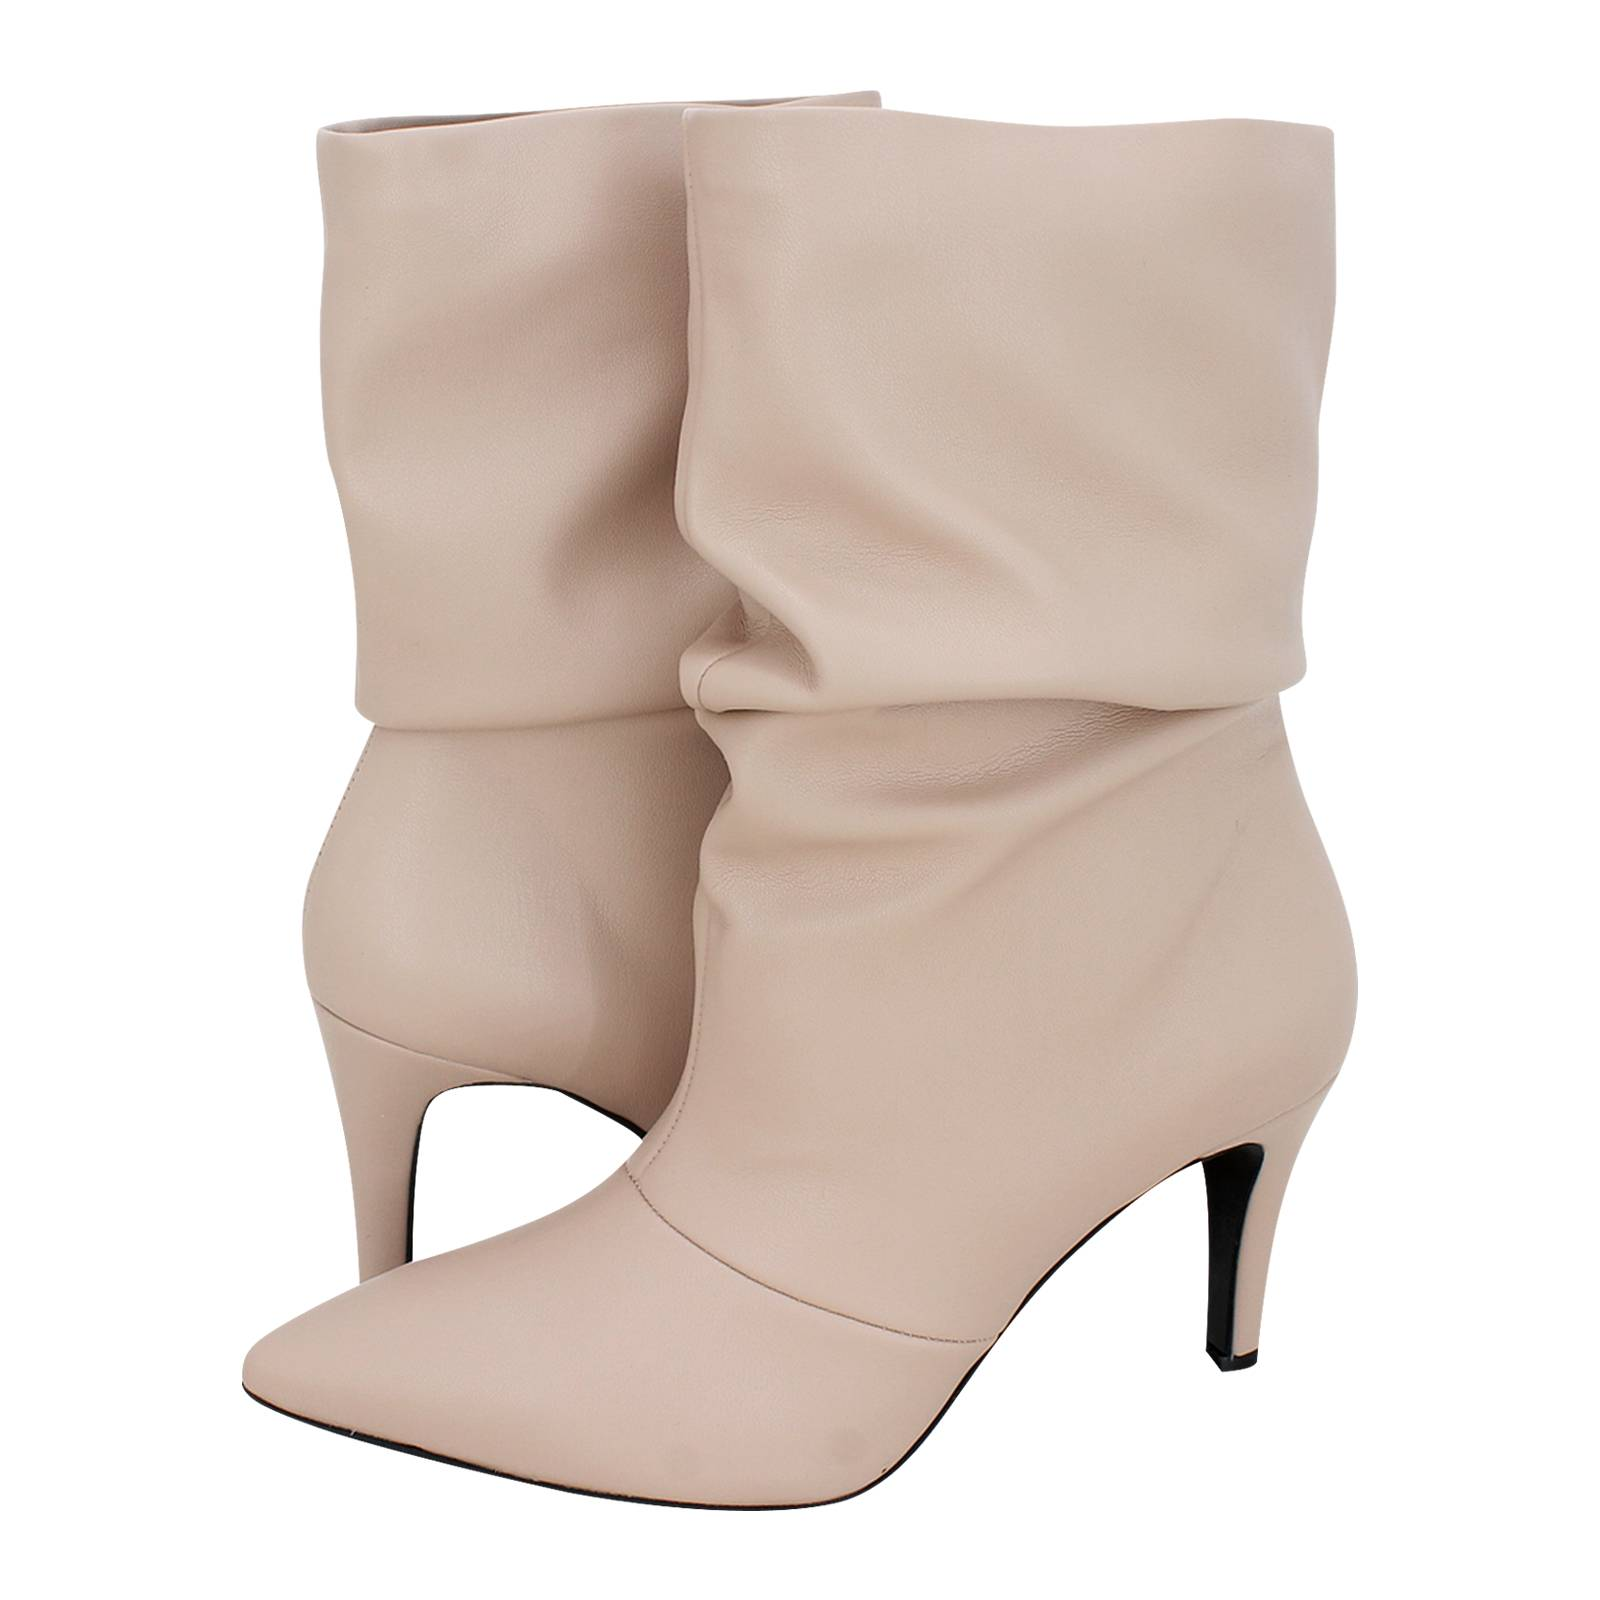 Talludden - Esthissis Women s low boots made of synthetic - Gianna ... f4b509c98e8